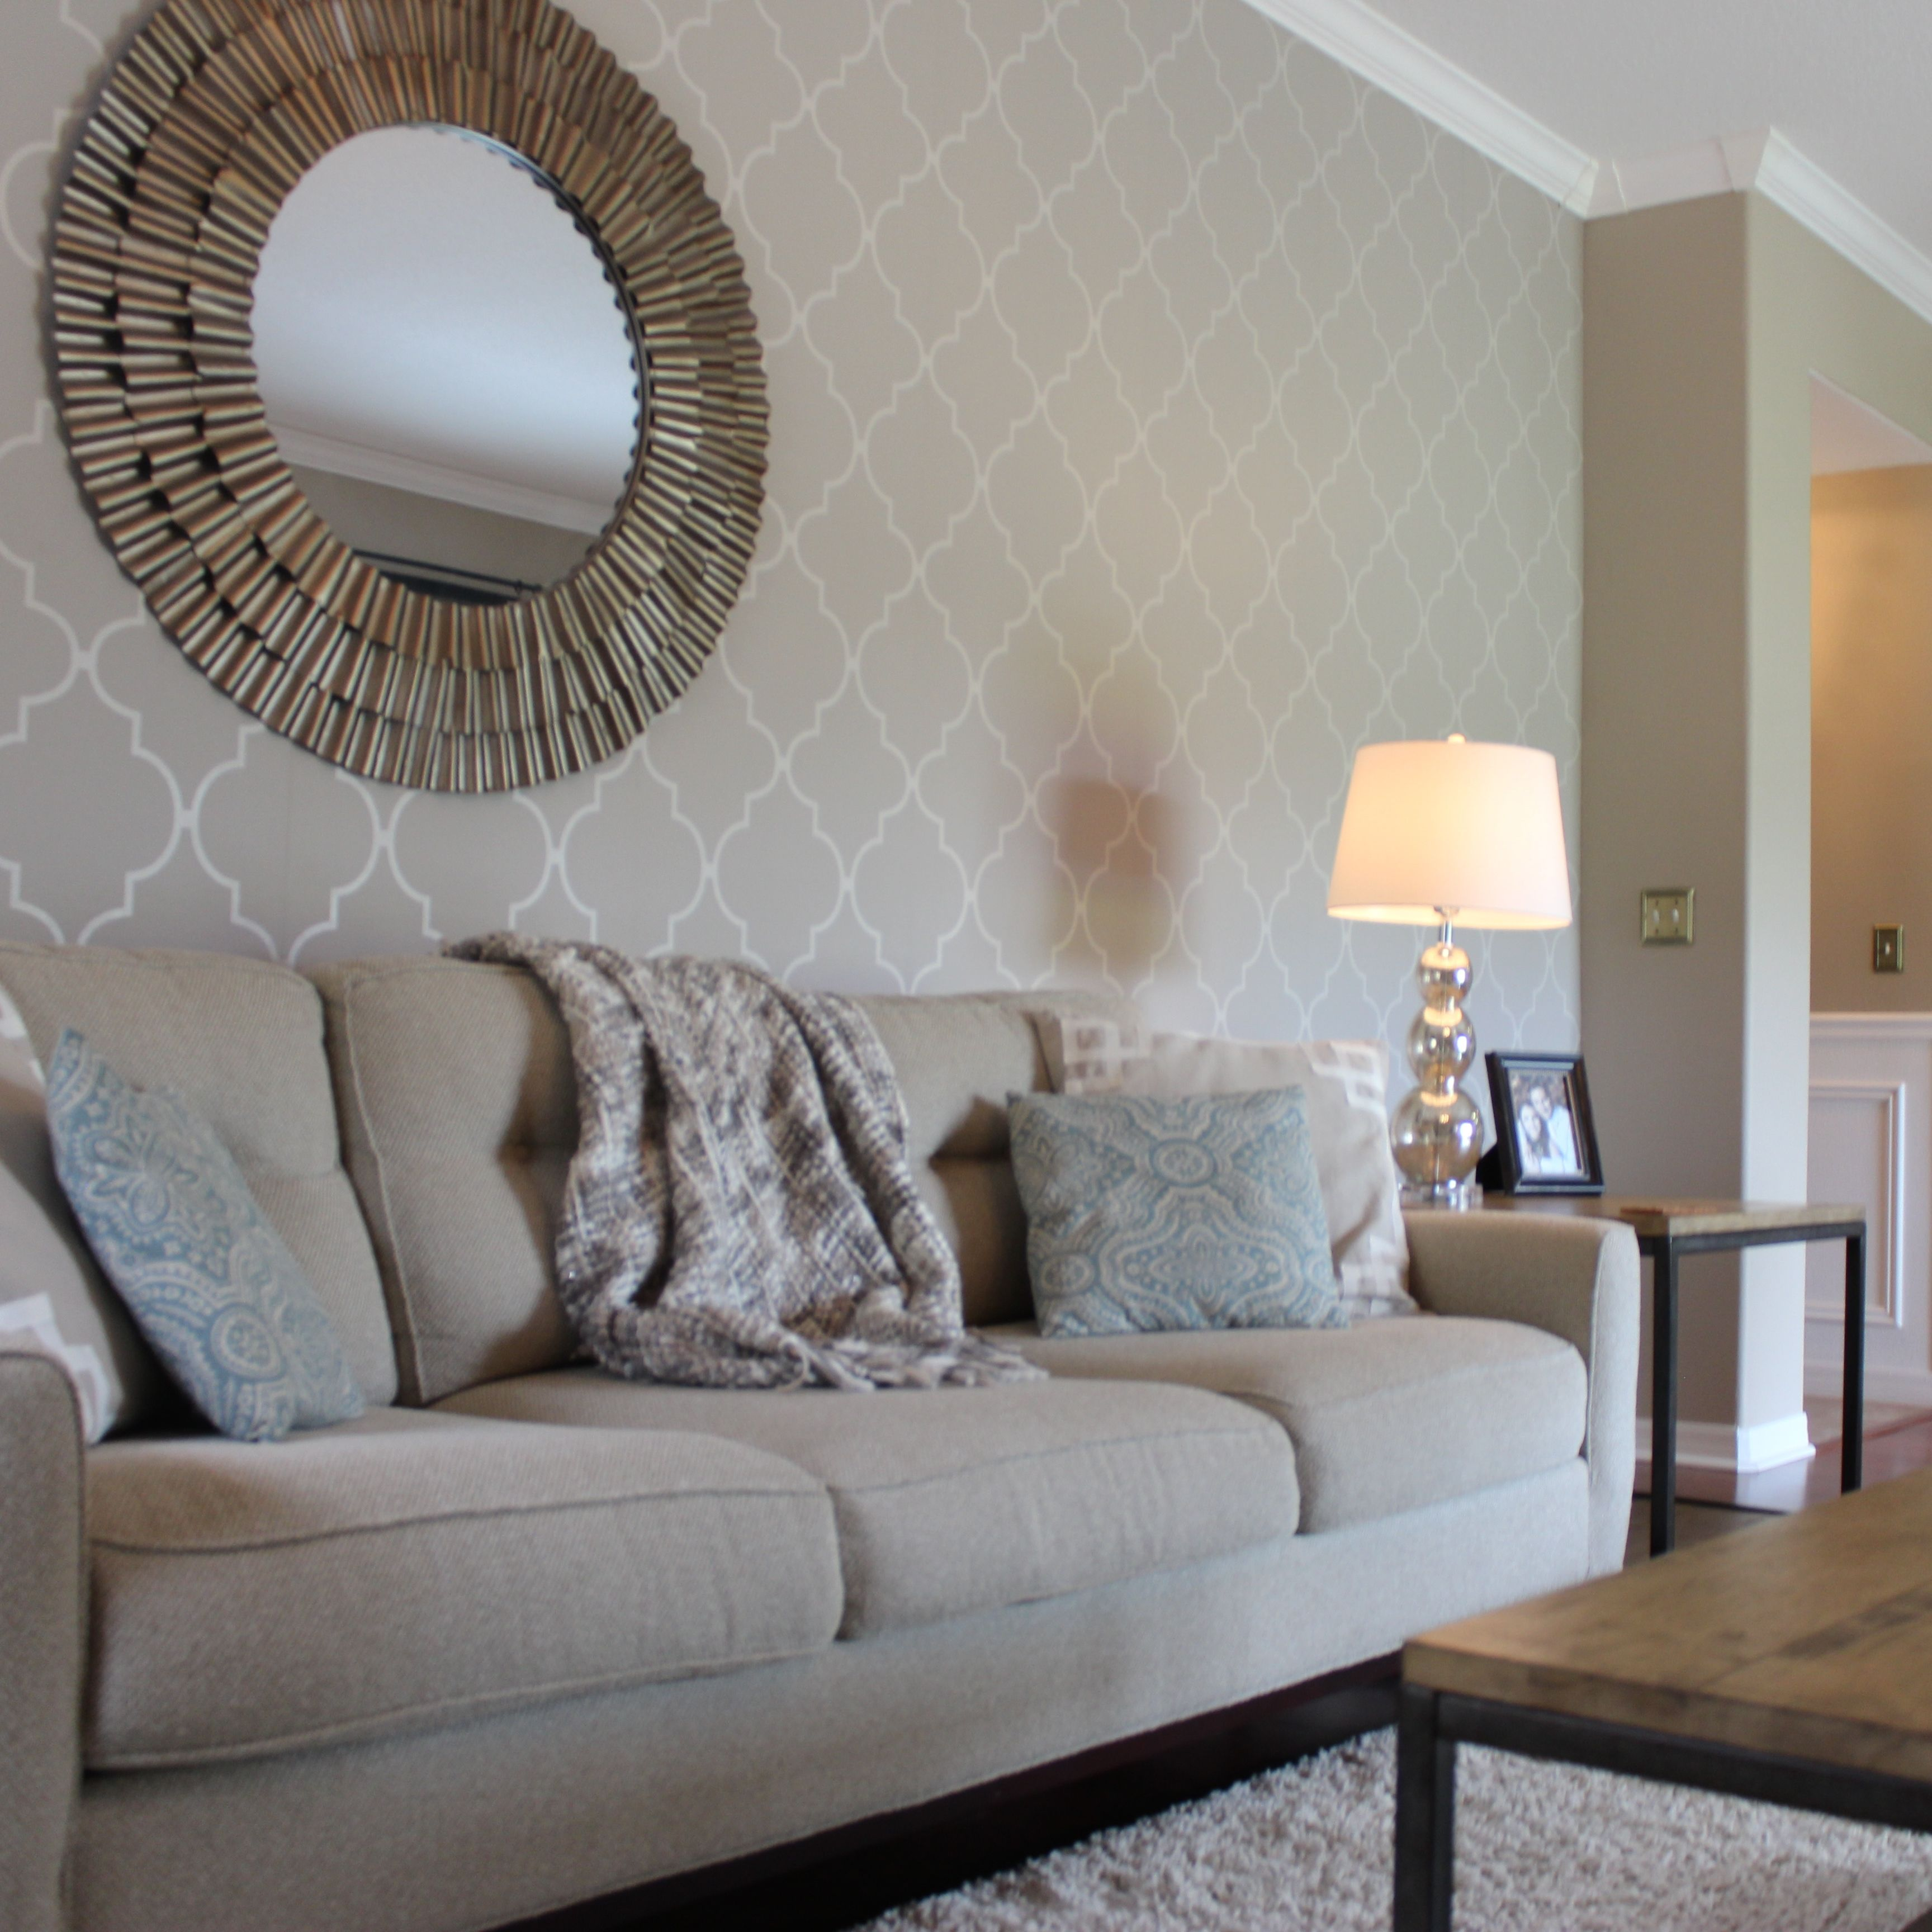 Let Us Move On To Those Accent Wall Ideas That Will Help You Redesign Your S Wallpaper Living Room Accent Wall Feature Wall Bedroom Accent Walls In Living Room Living room accent wallpaper